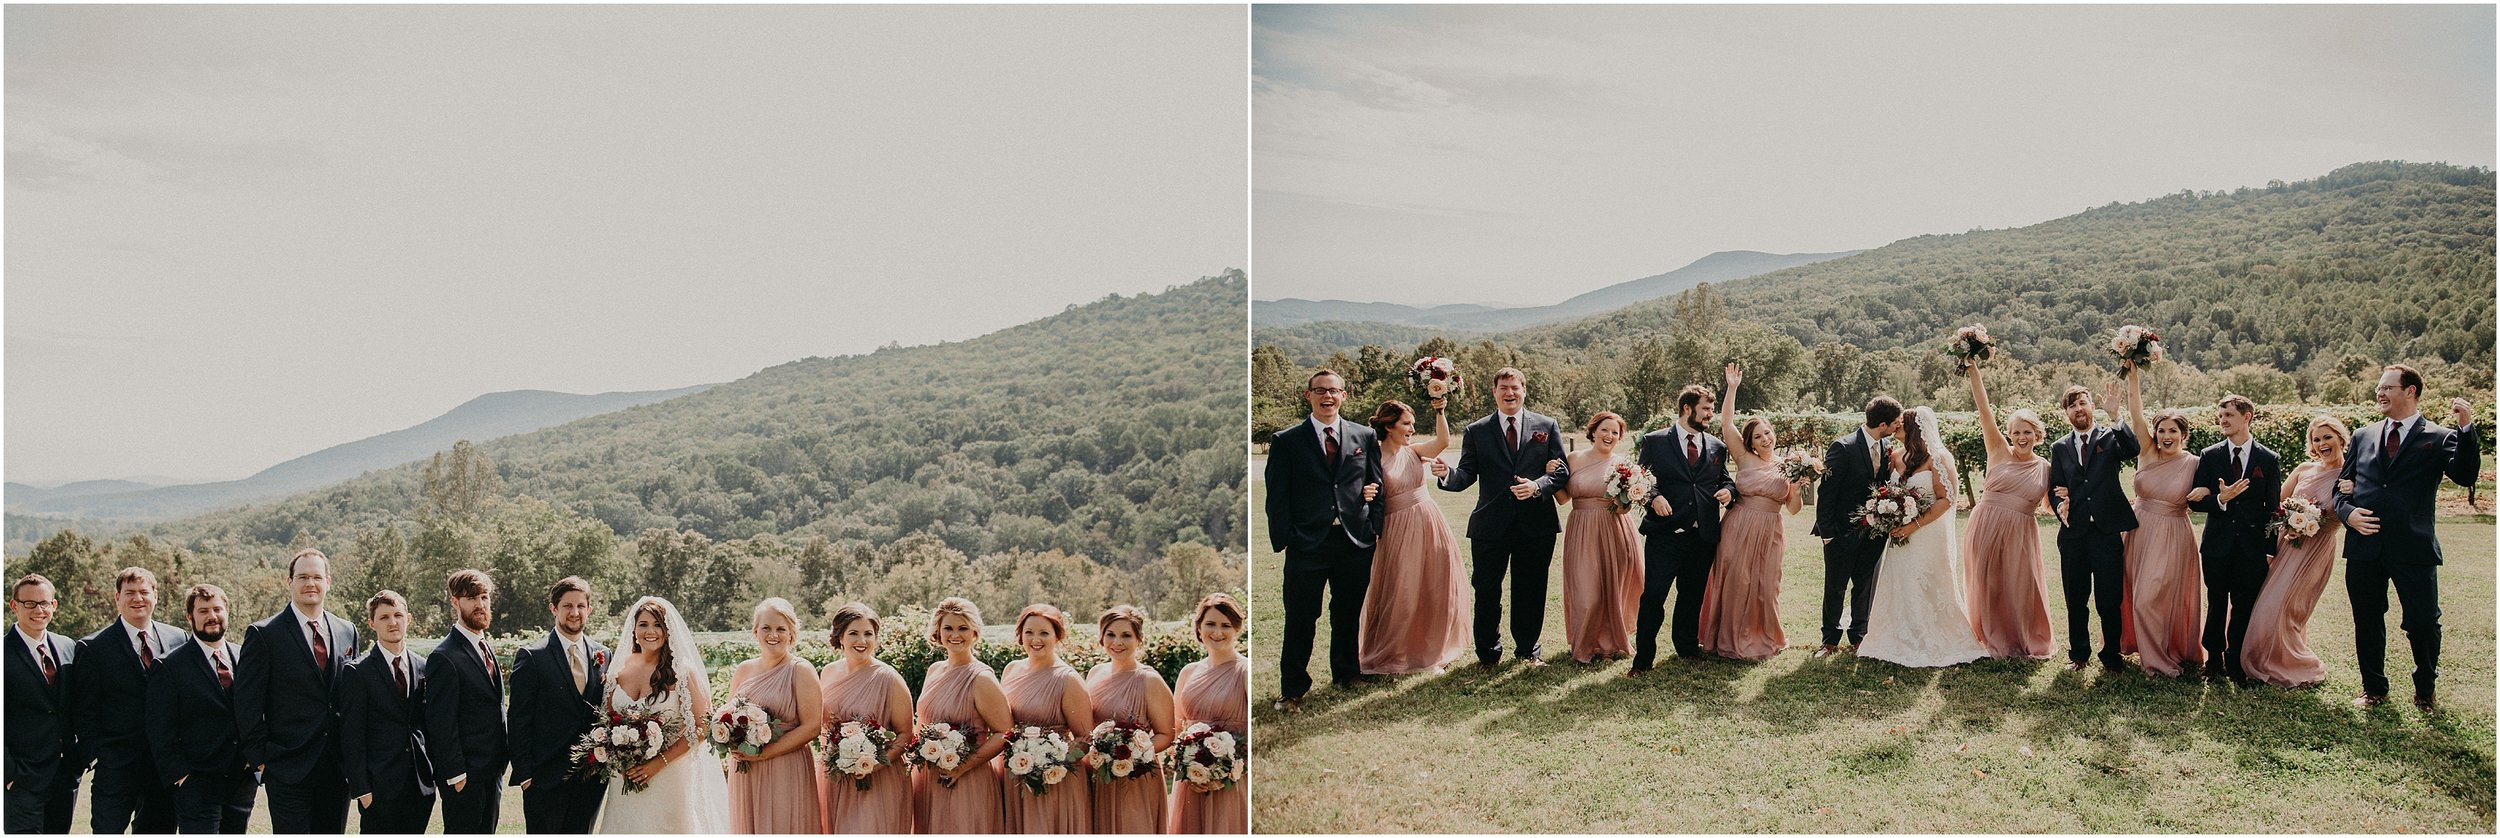 Wedding party portrait and celebration with pops of blush pink and navy